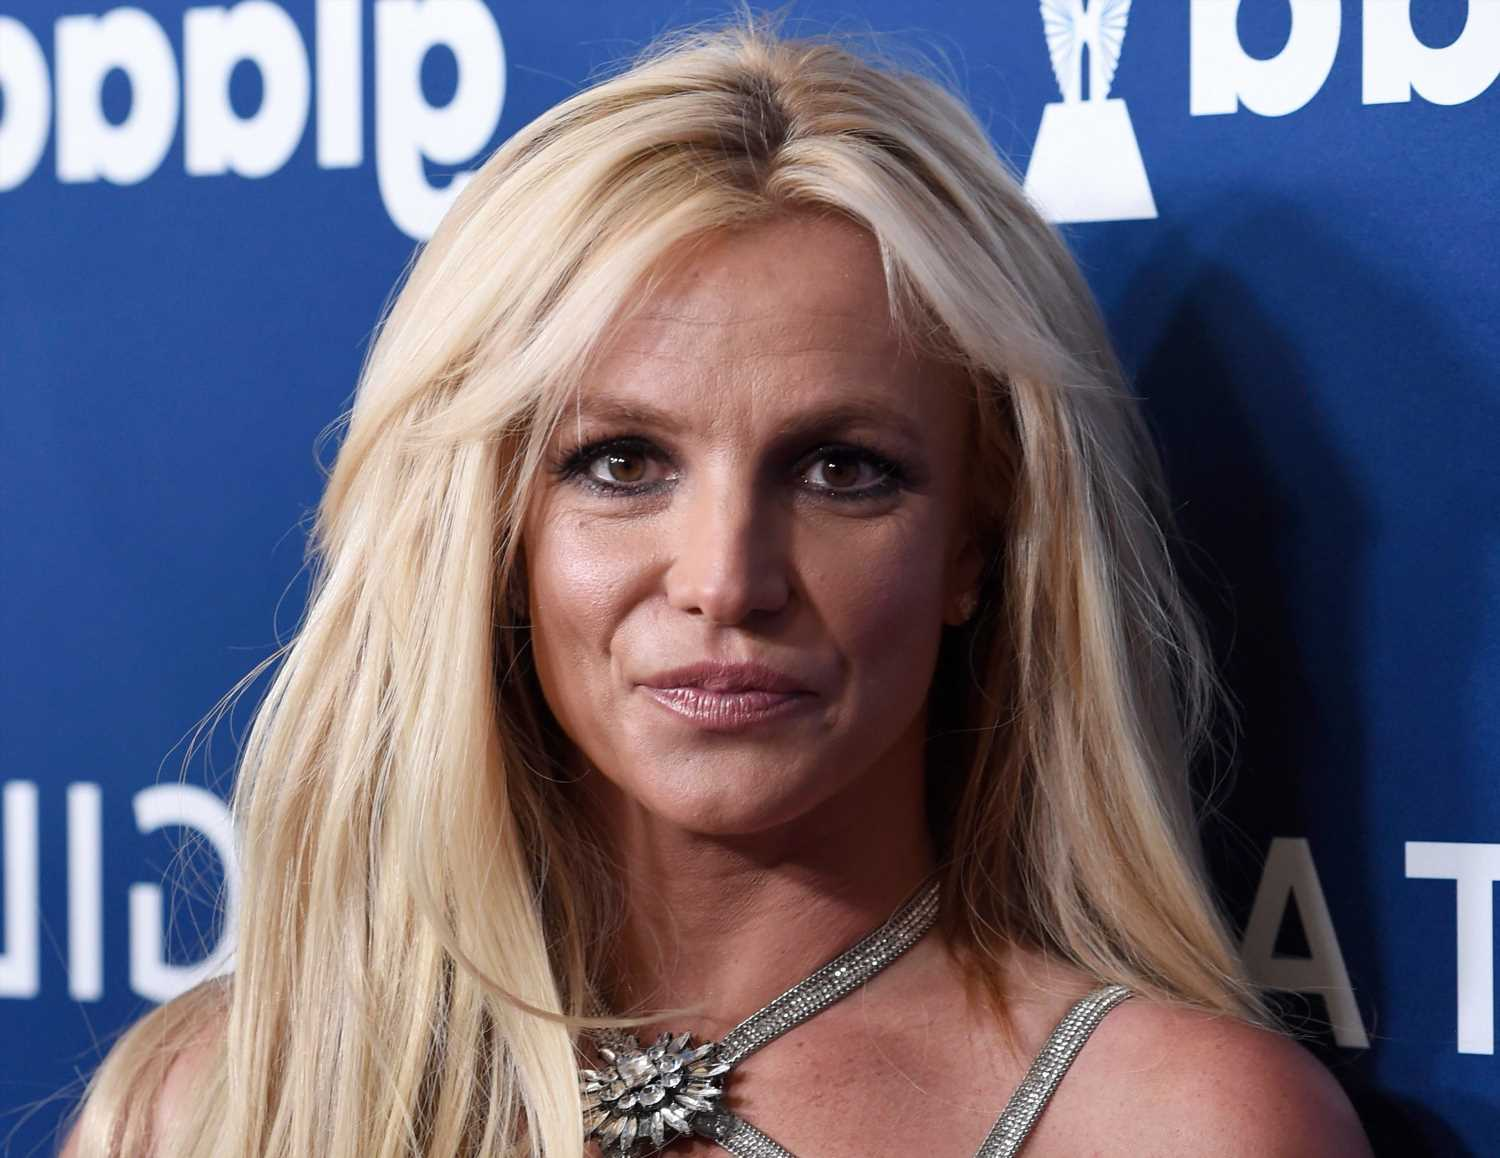 Britney Spears' dad says 'star's addiction & mental health problems were far worse than public realized', in court docs